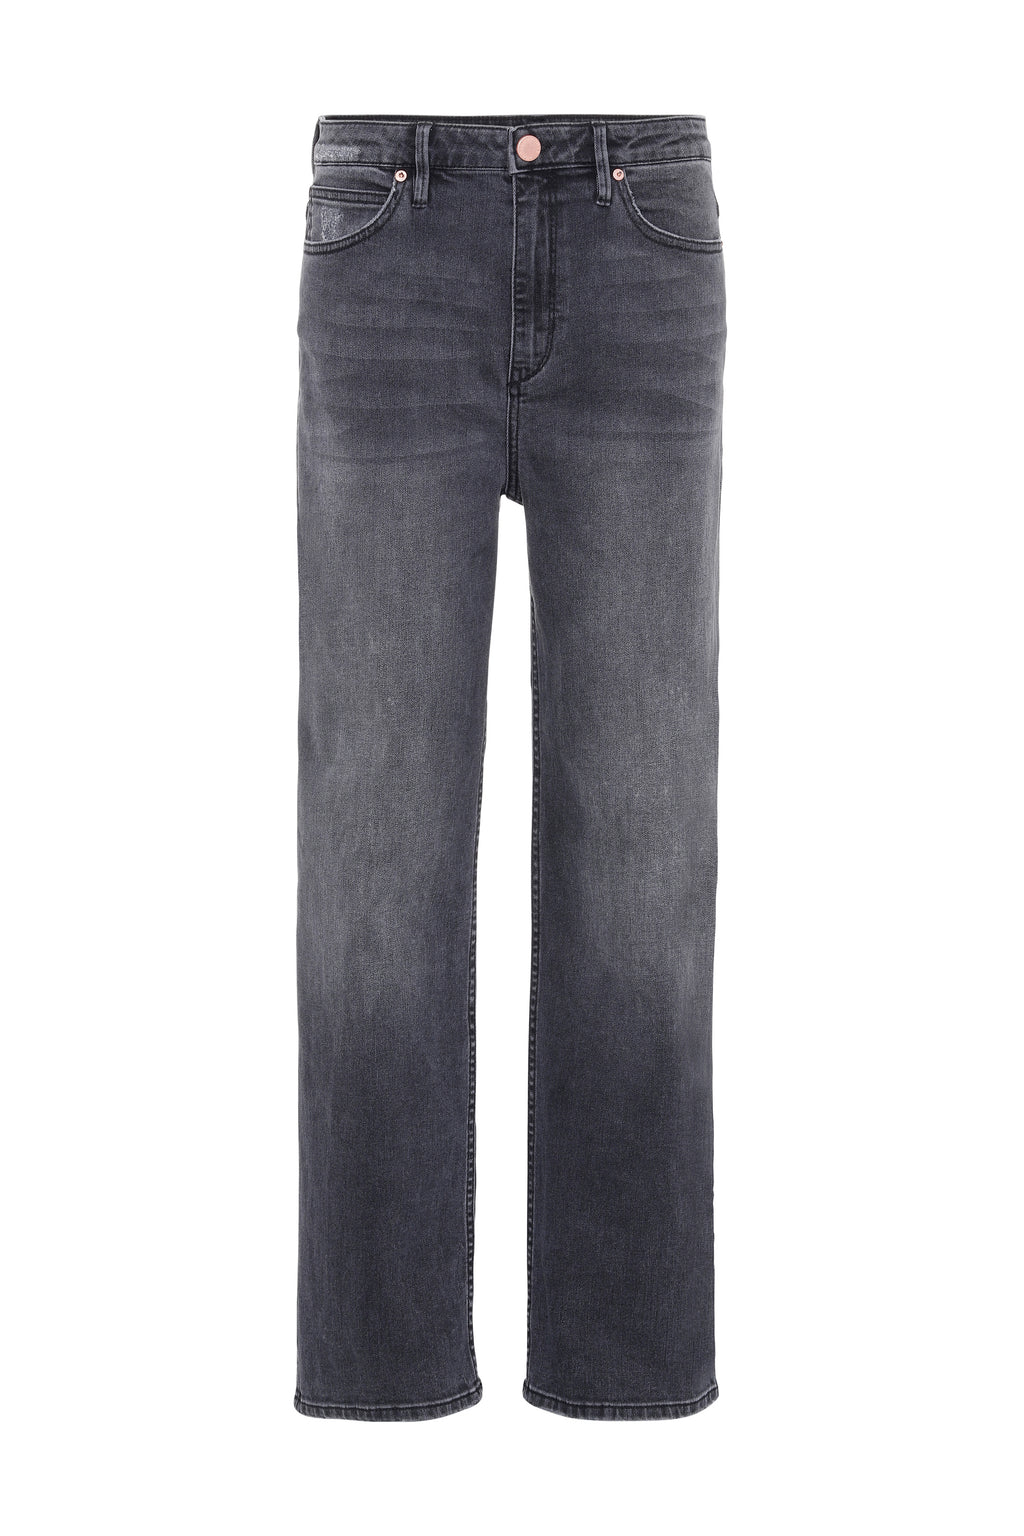 RAVEN - High Waisted Straight Leg Jeans